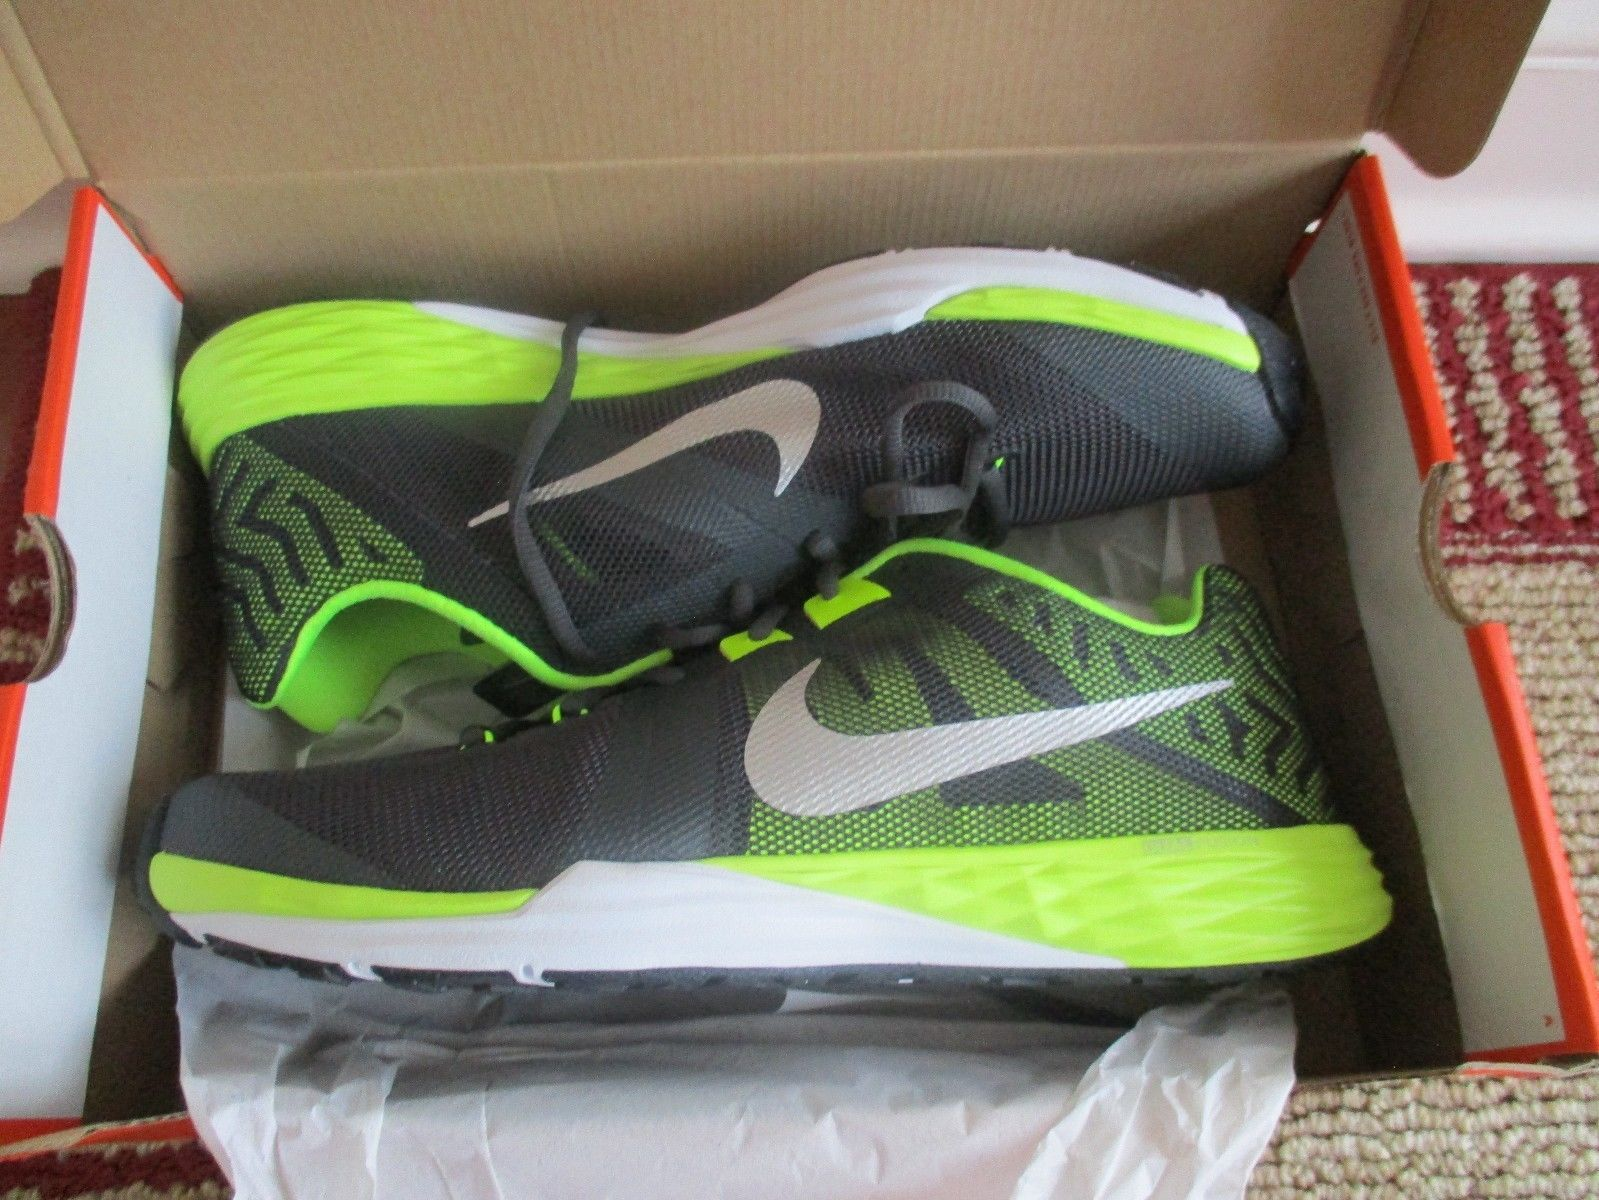 Primary image for BNIB Nike Train Prime Iron DF Men's Training Shoes, Size 11, 832219